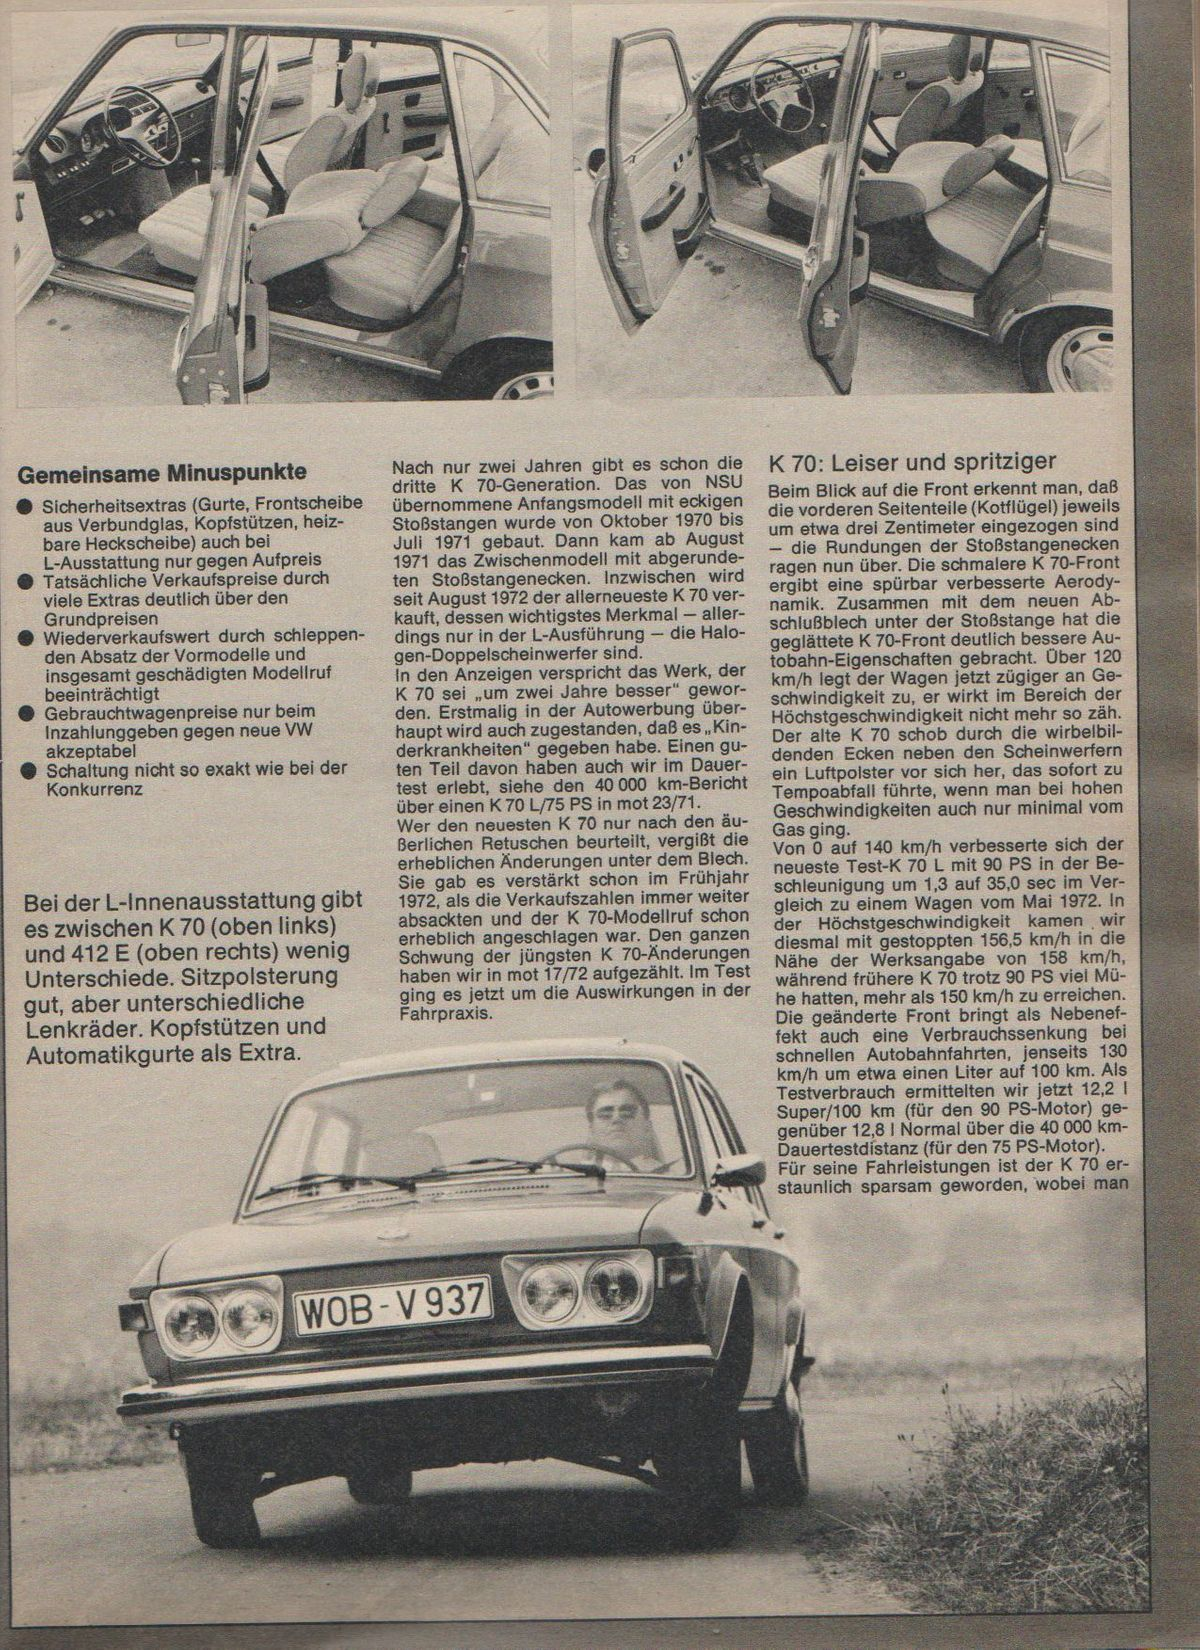 mot auto-journal 26 - 04.11.1972 S. 23